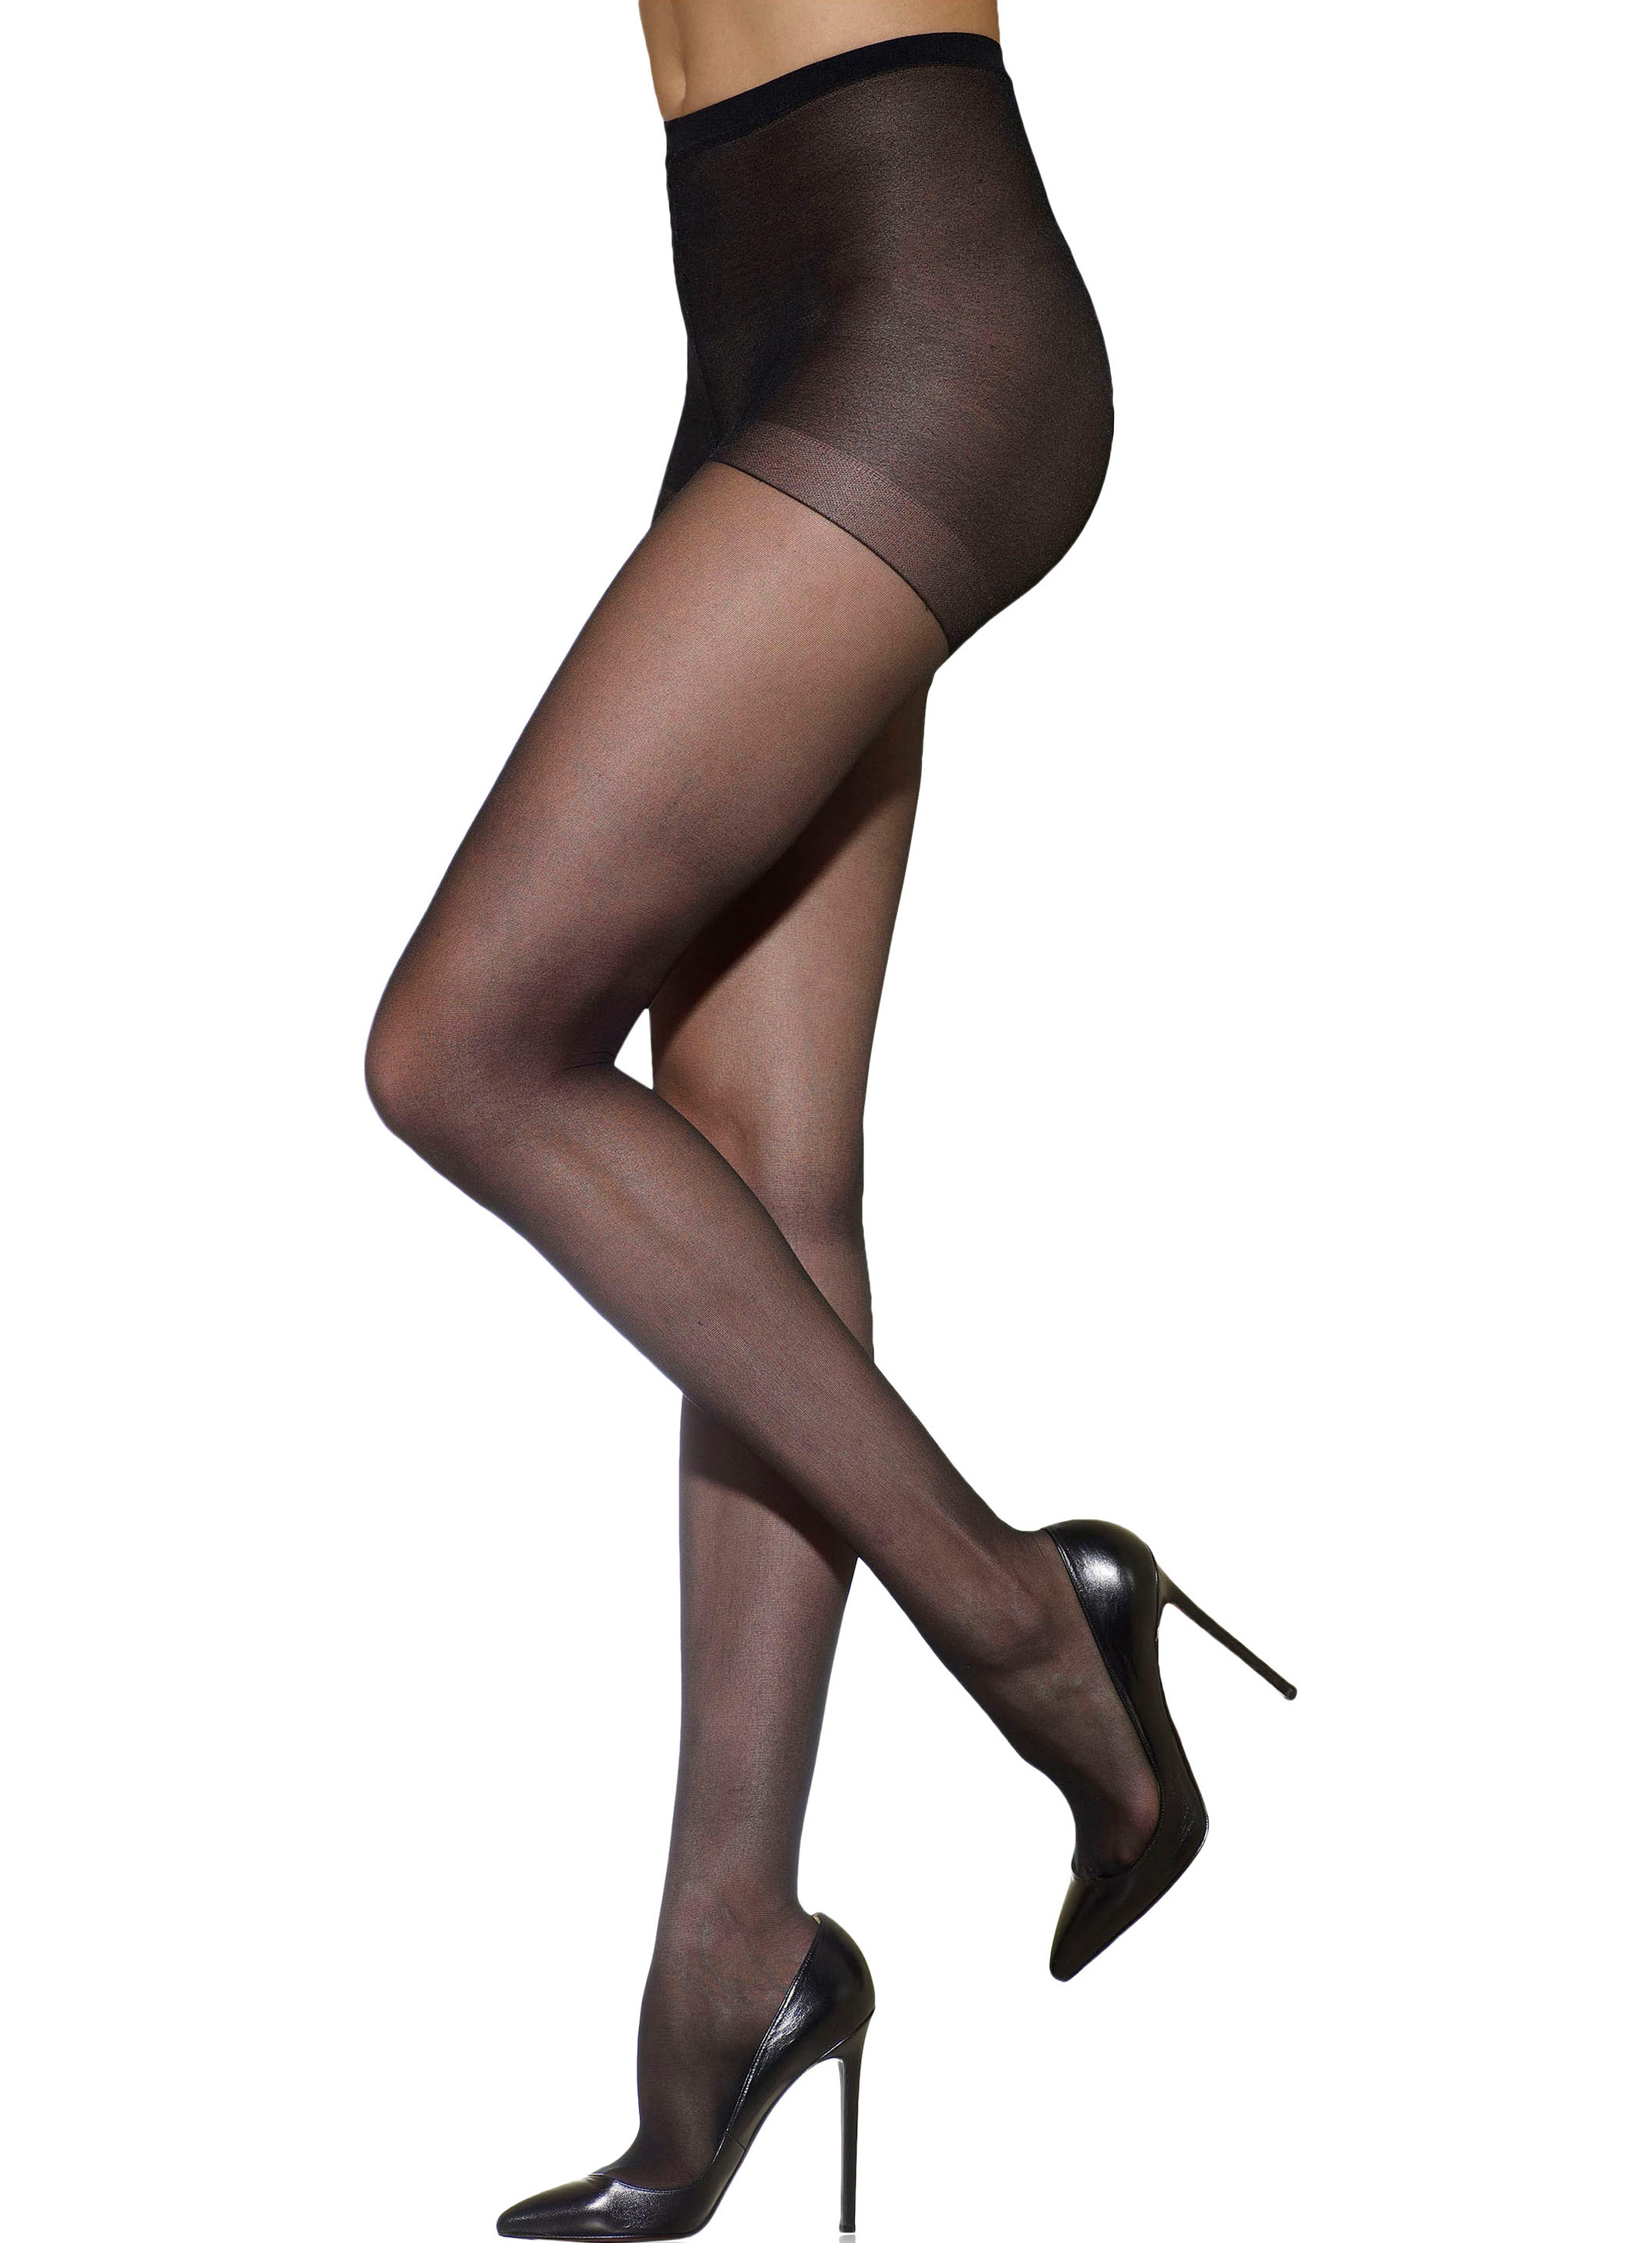 Seems remarkable Wearing pantyhose allday commit